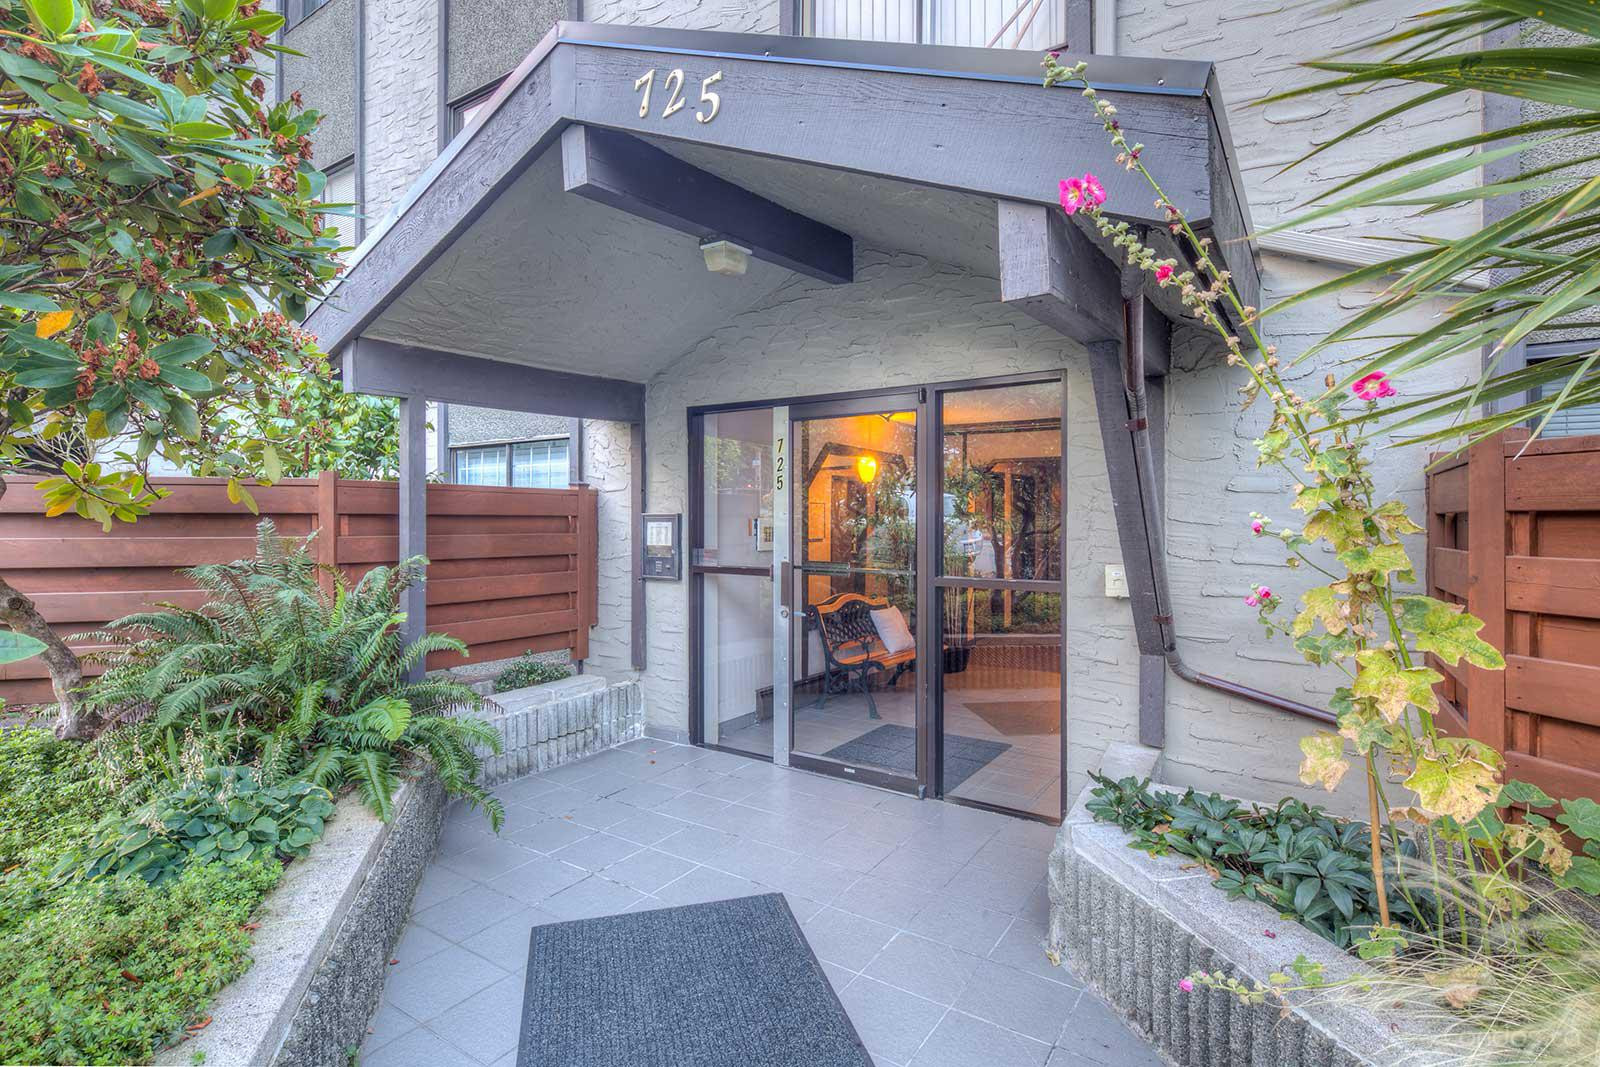 Place Devito at 725 Commercial Dr, Vancouver 1